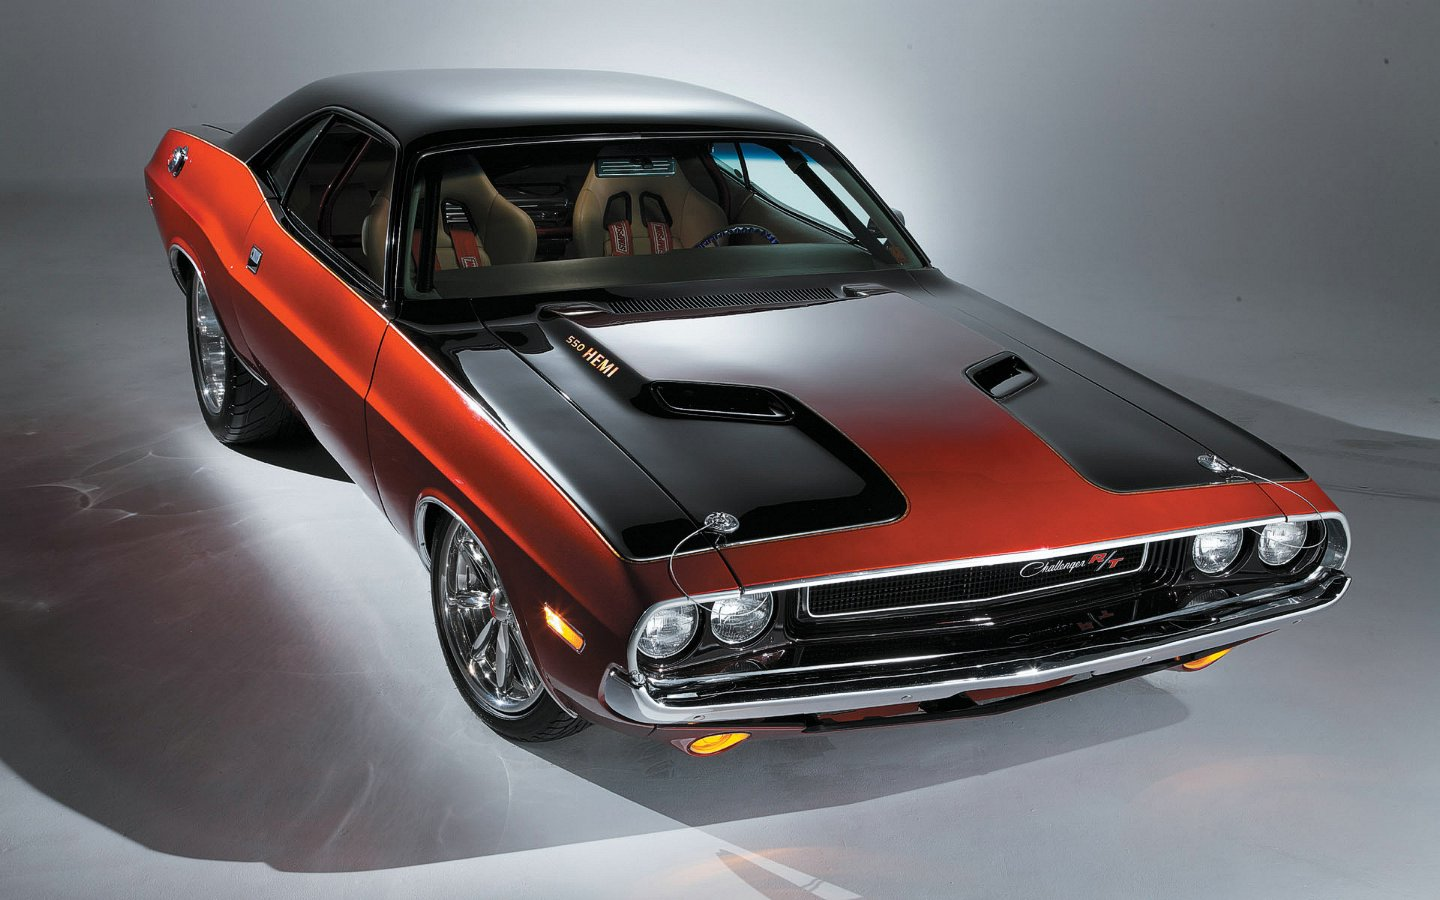 Muscle Cars Challenger Classic American Car Photo Shoot Image Of ...